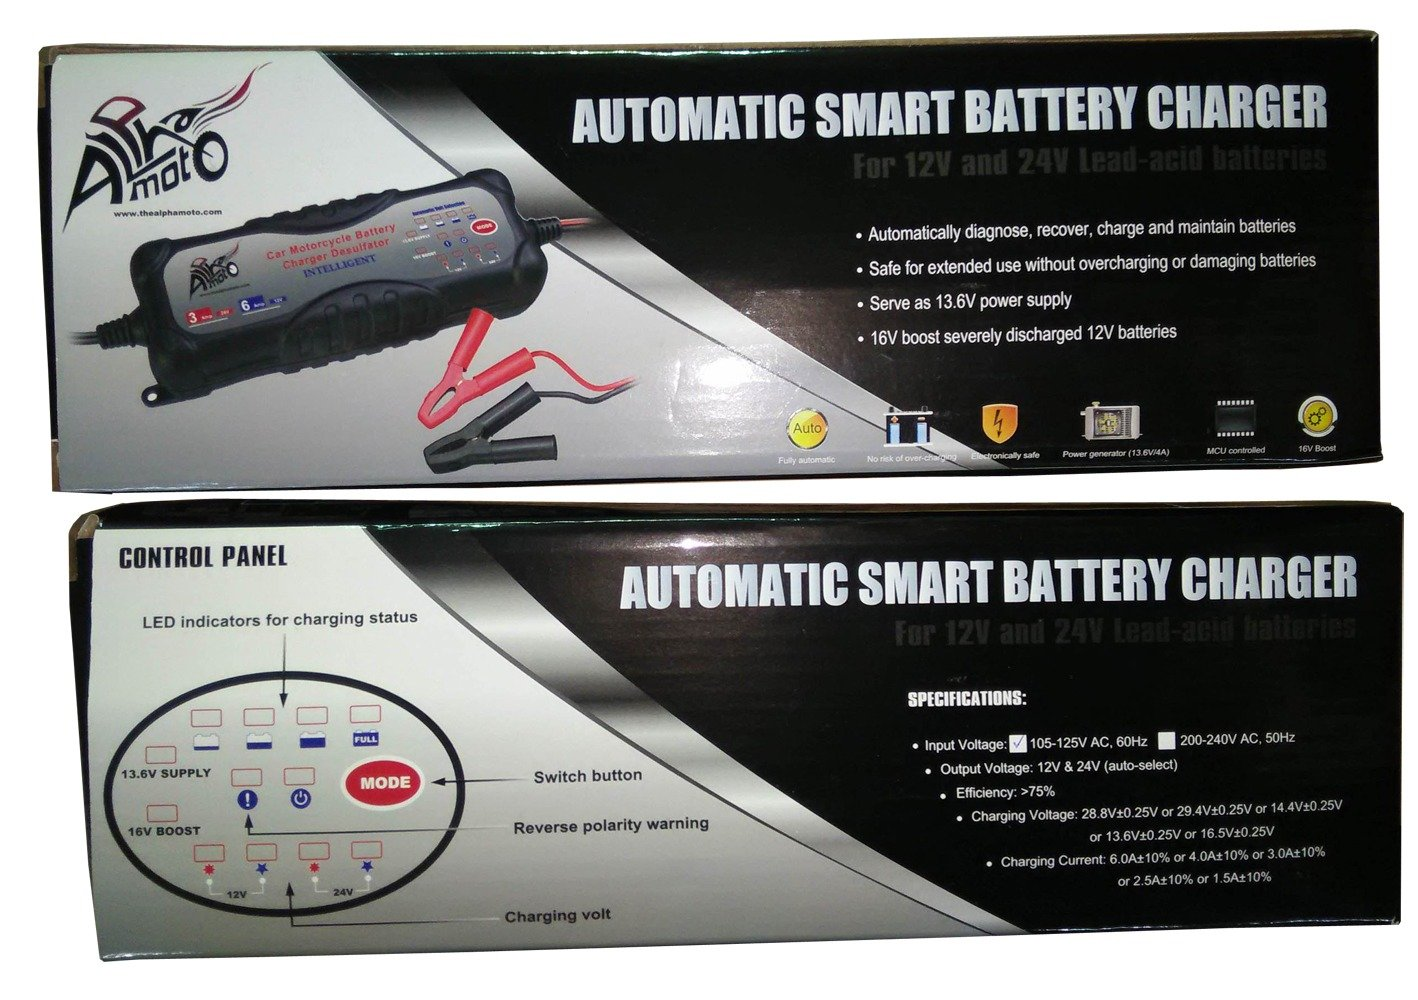 Alpha Moto Alphamoto 7 Stage 12v Automatic Motorcycle Battery Desulphation Progress Monitor Car Truck Vehicles Atv Cross Boats Trucks Cars Water Craft Golf Carts Lawn Mower Smart Charger Tender Maintainer Automotive